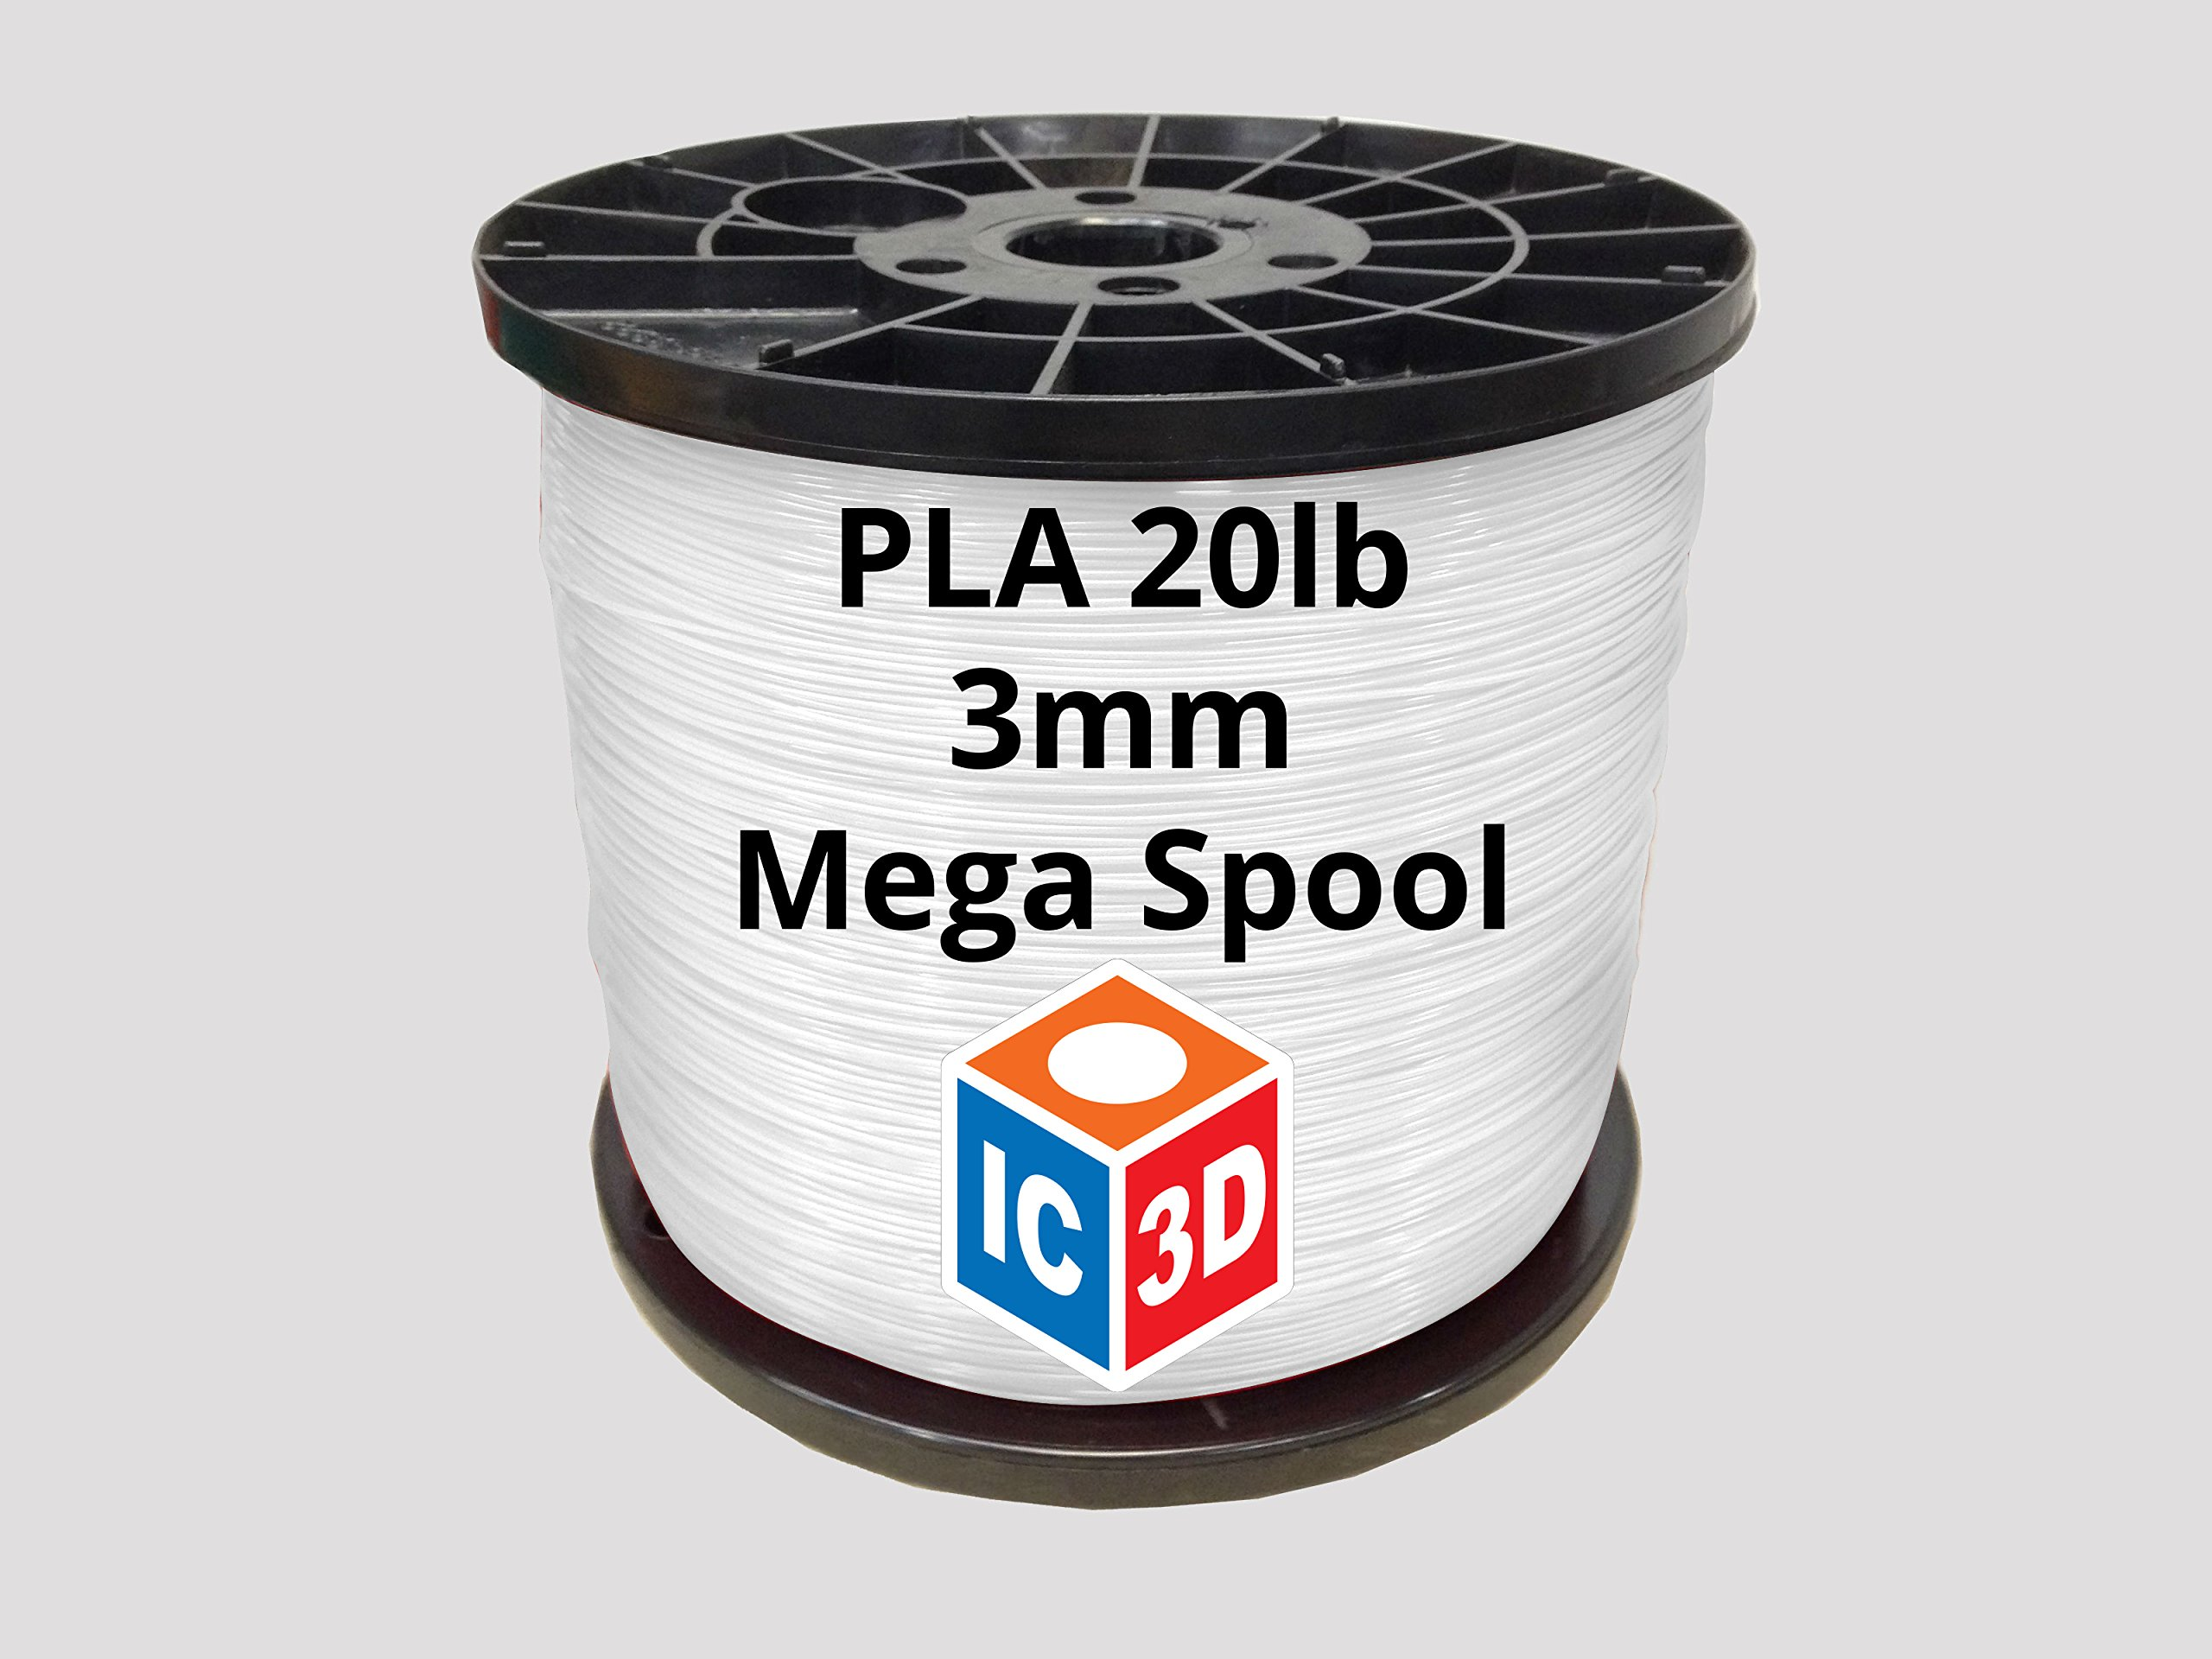 IC3D White 3mm PLA 3D Printer Filament Mega Spool (20lbs) - Dimensional Accuracy +/- 0.05mm - Professional Grade 3D Printing Filament - MADE IN USA by IC3D